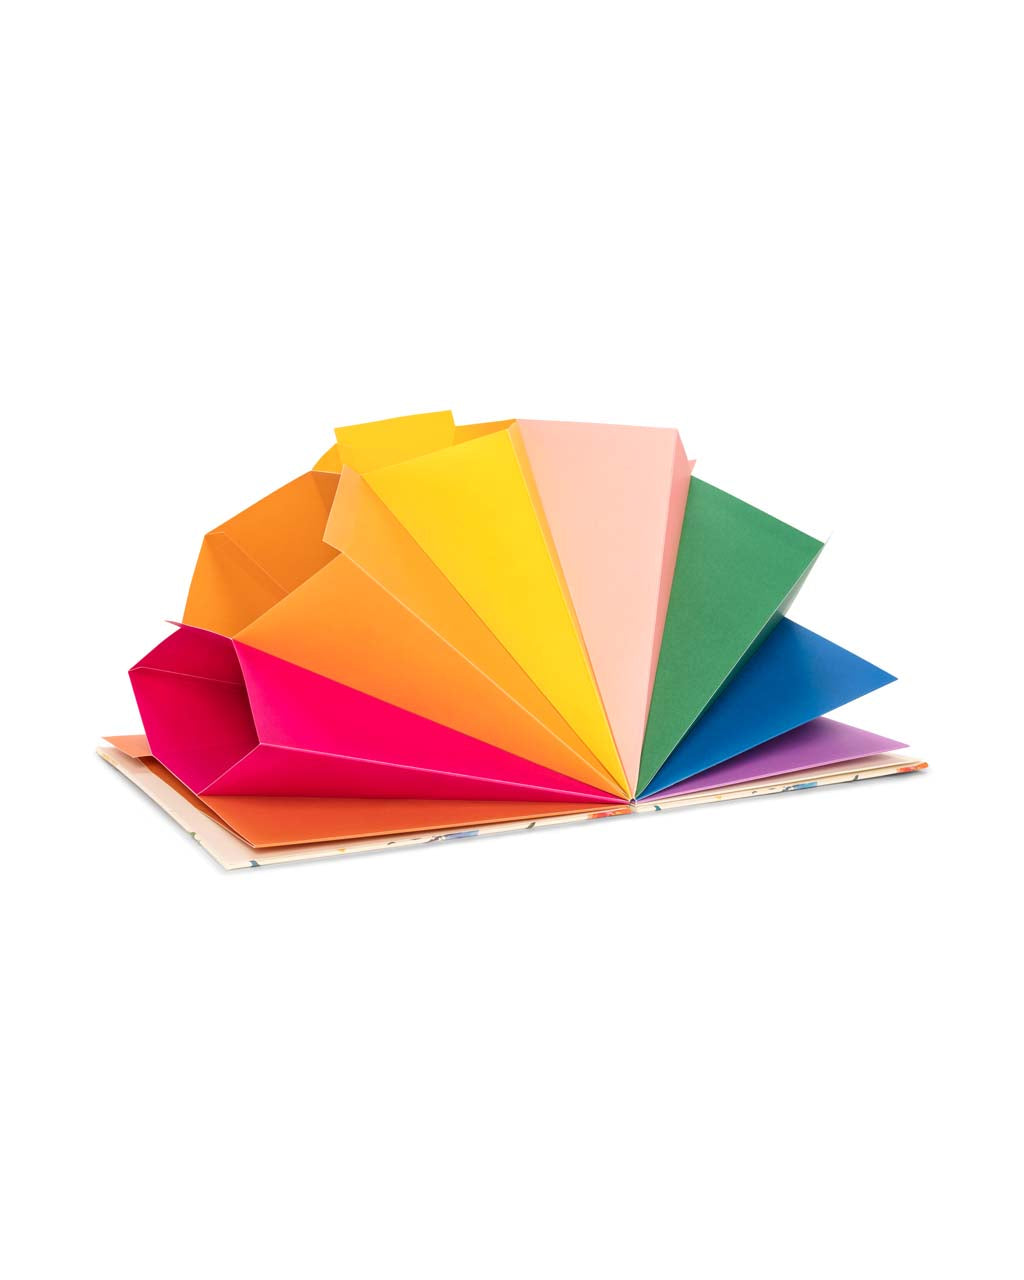 This file folder comes with 9 accordion folders in rainbow colors.